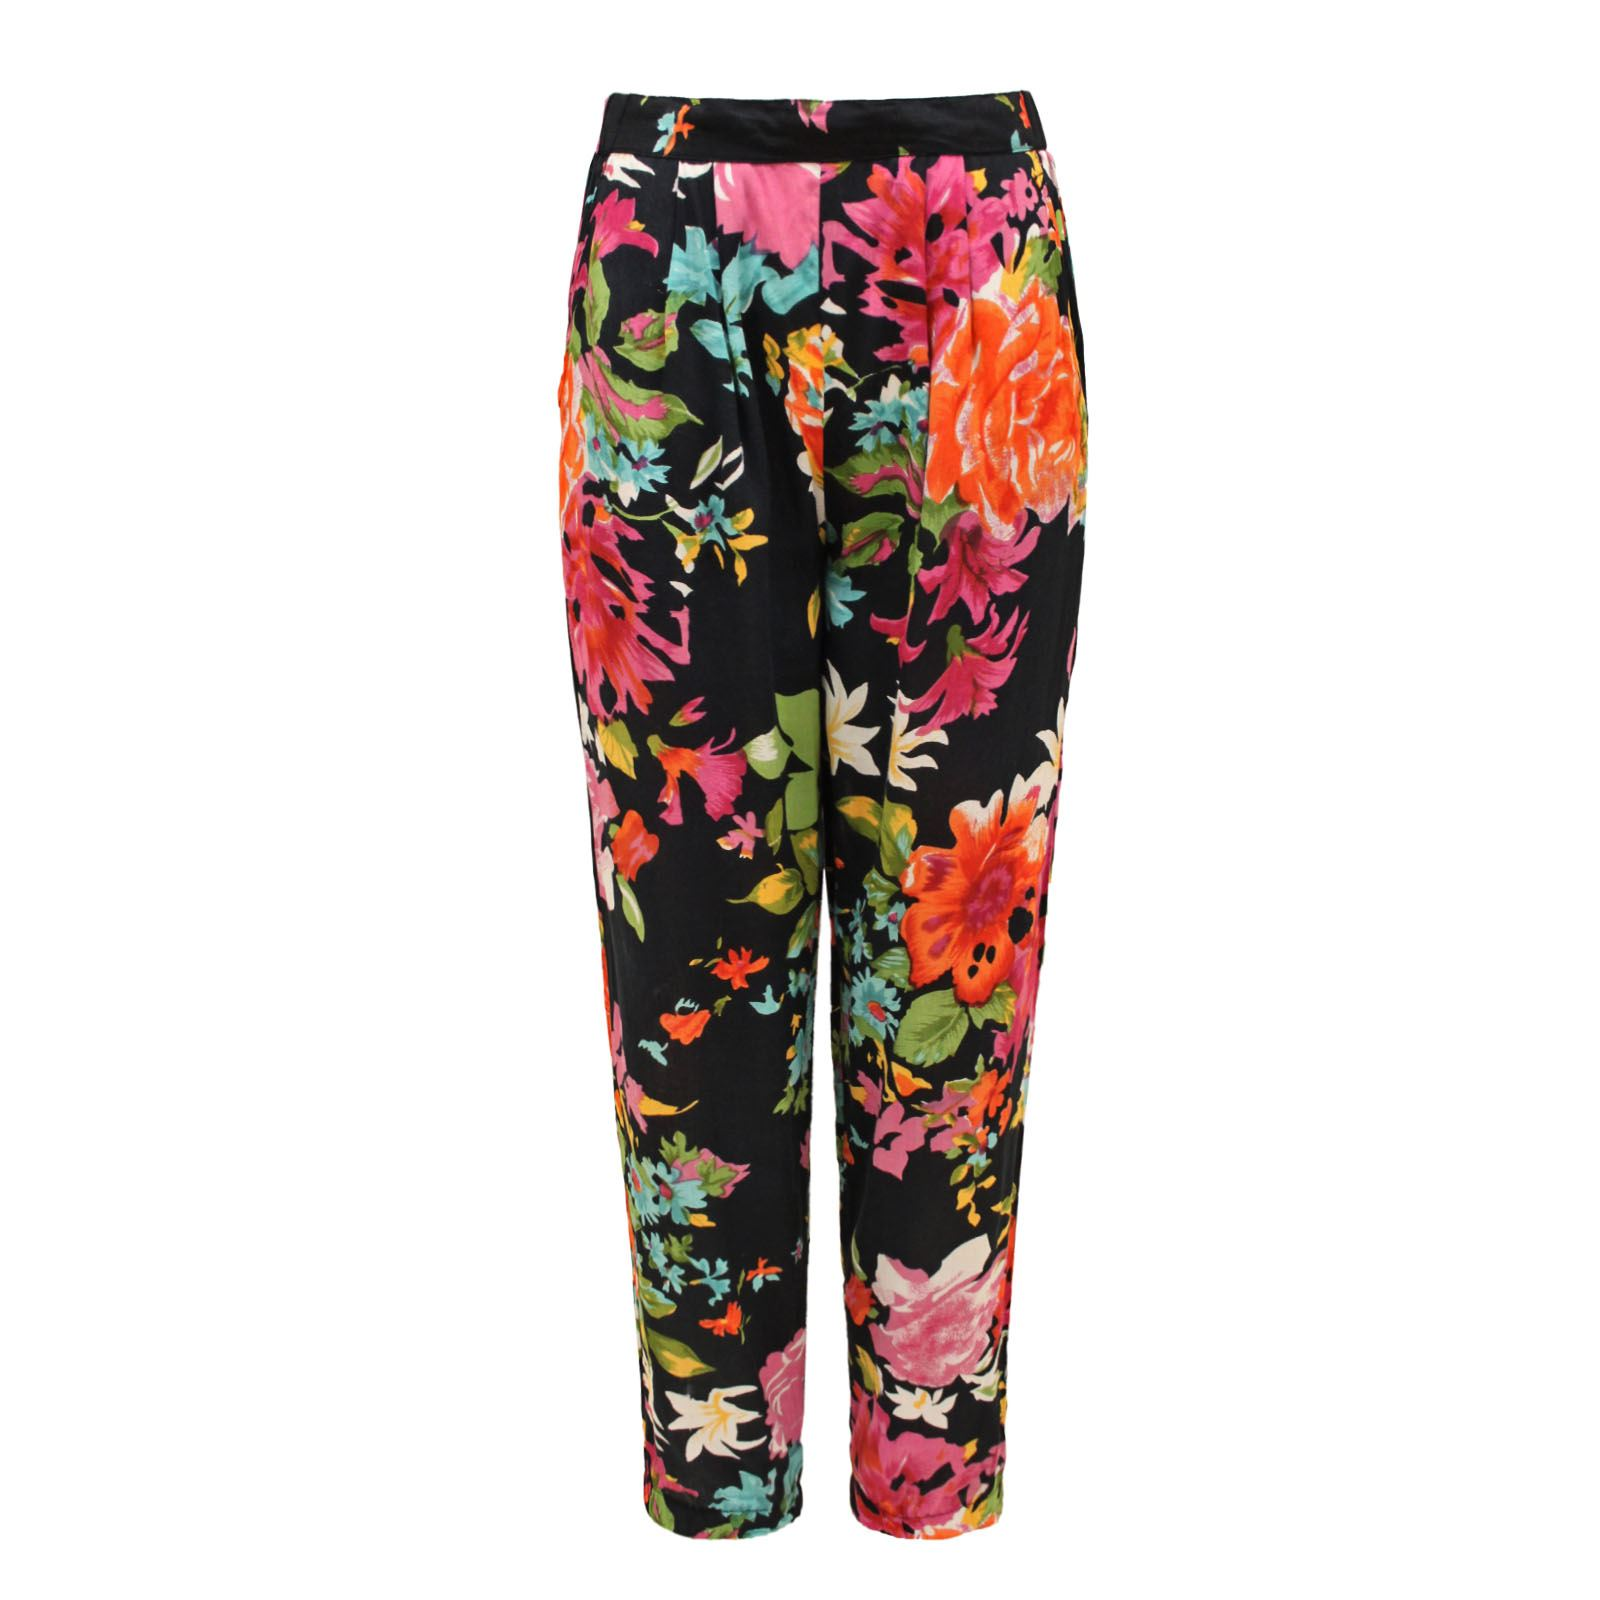 Shop the Latest Styles Ted Baker womenswear collection Floral detail trousers MADLYNE Black womens Trousers & Shorts % Quality Guarantee. at UTDKNS,Featuring a splash of fun florals, Ted's MADLYNE trousers are just the ticket for livening up workwear o.